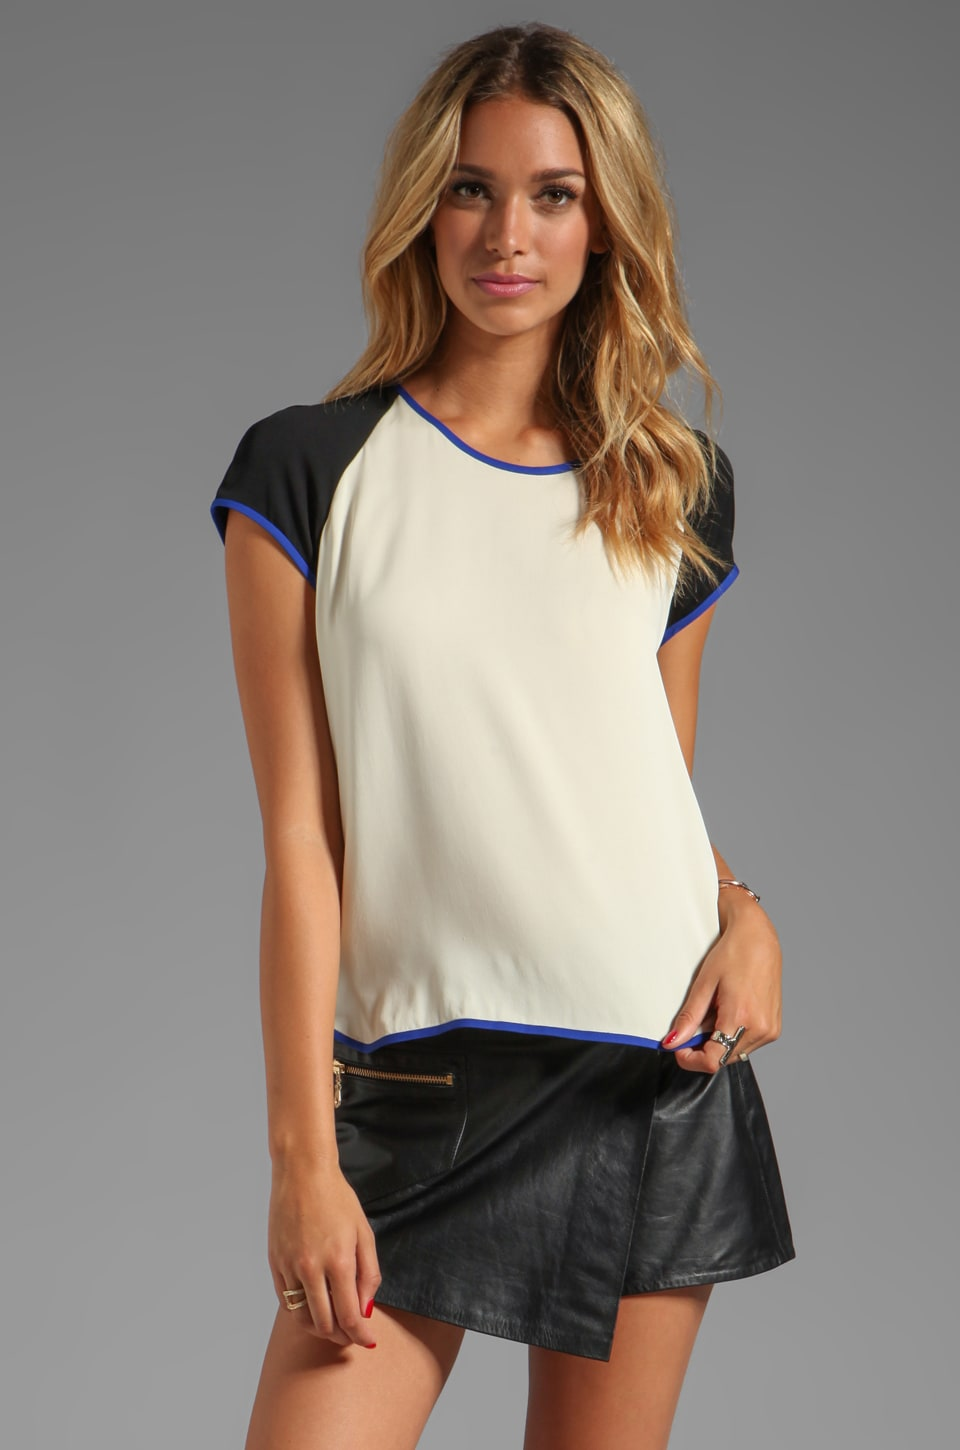 Diane von Furstenberg Liva Top in Blond Wood